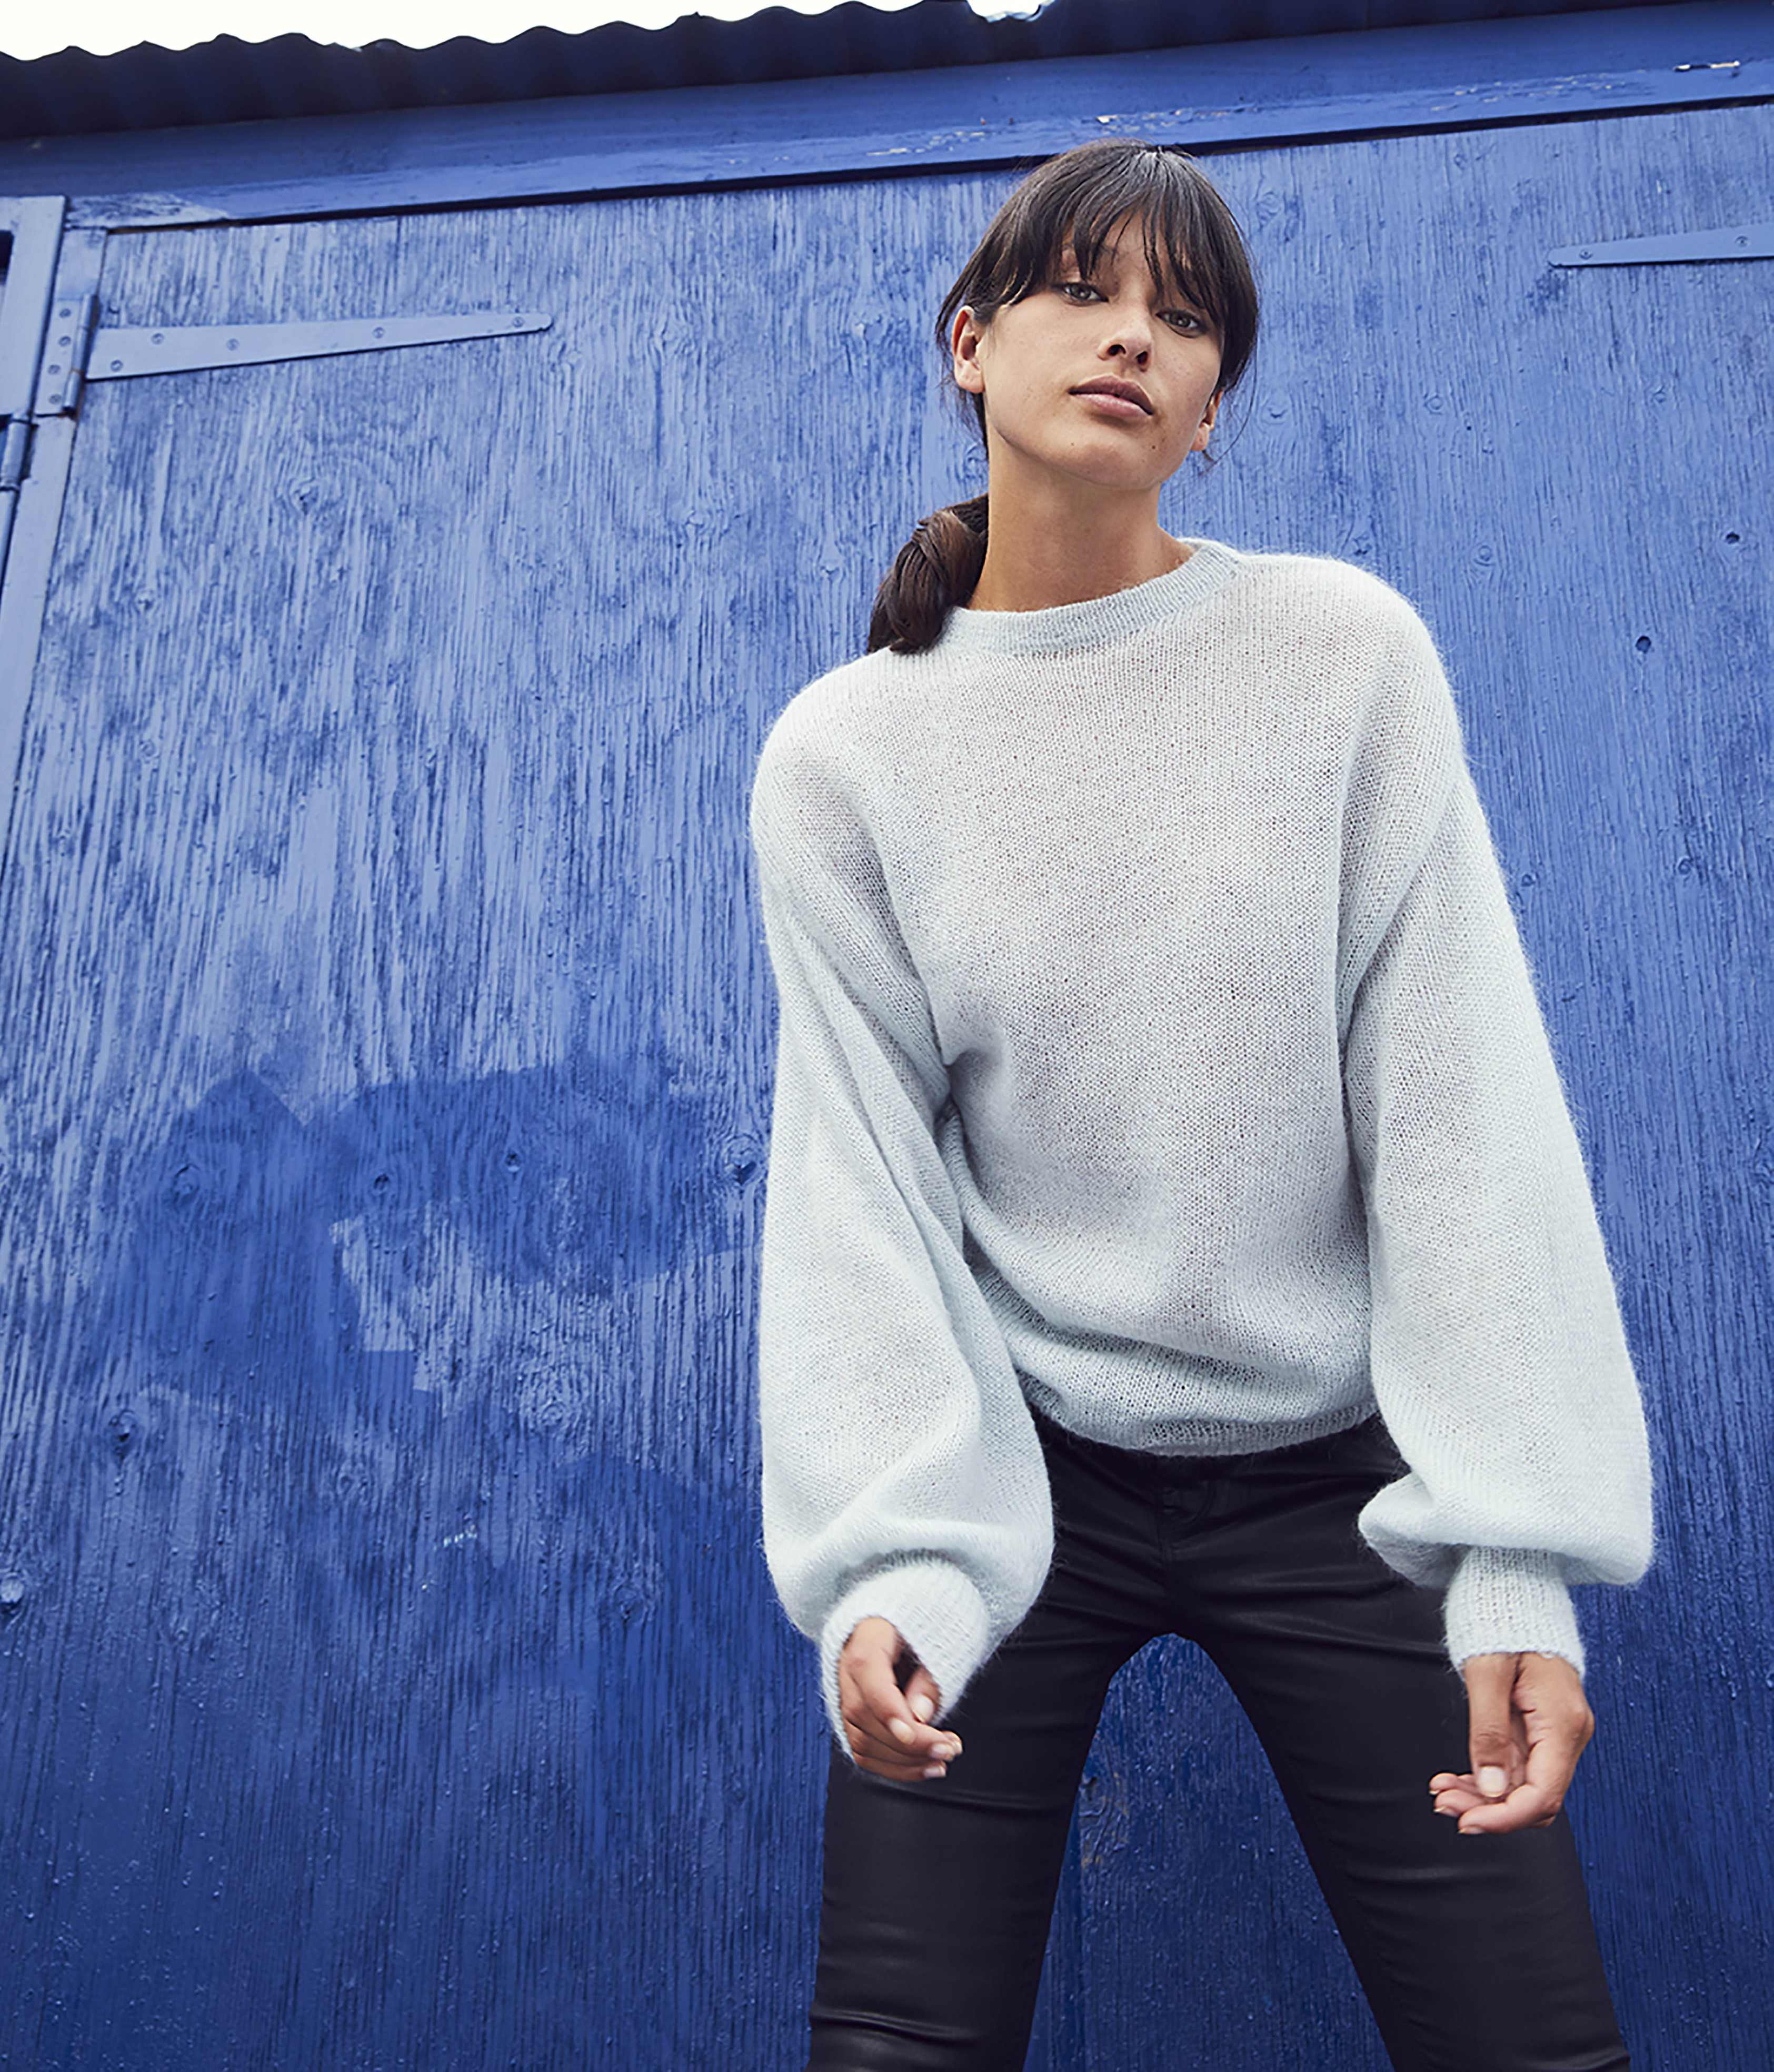 model wearing Oliver Bonas Mild Mohair Jumper and jeans